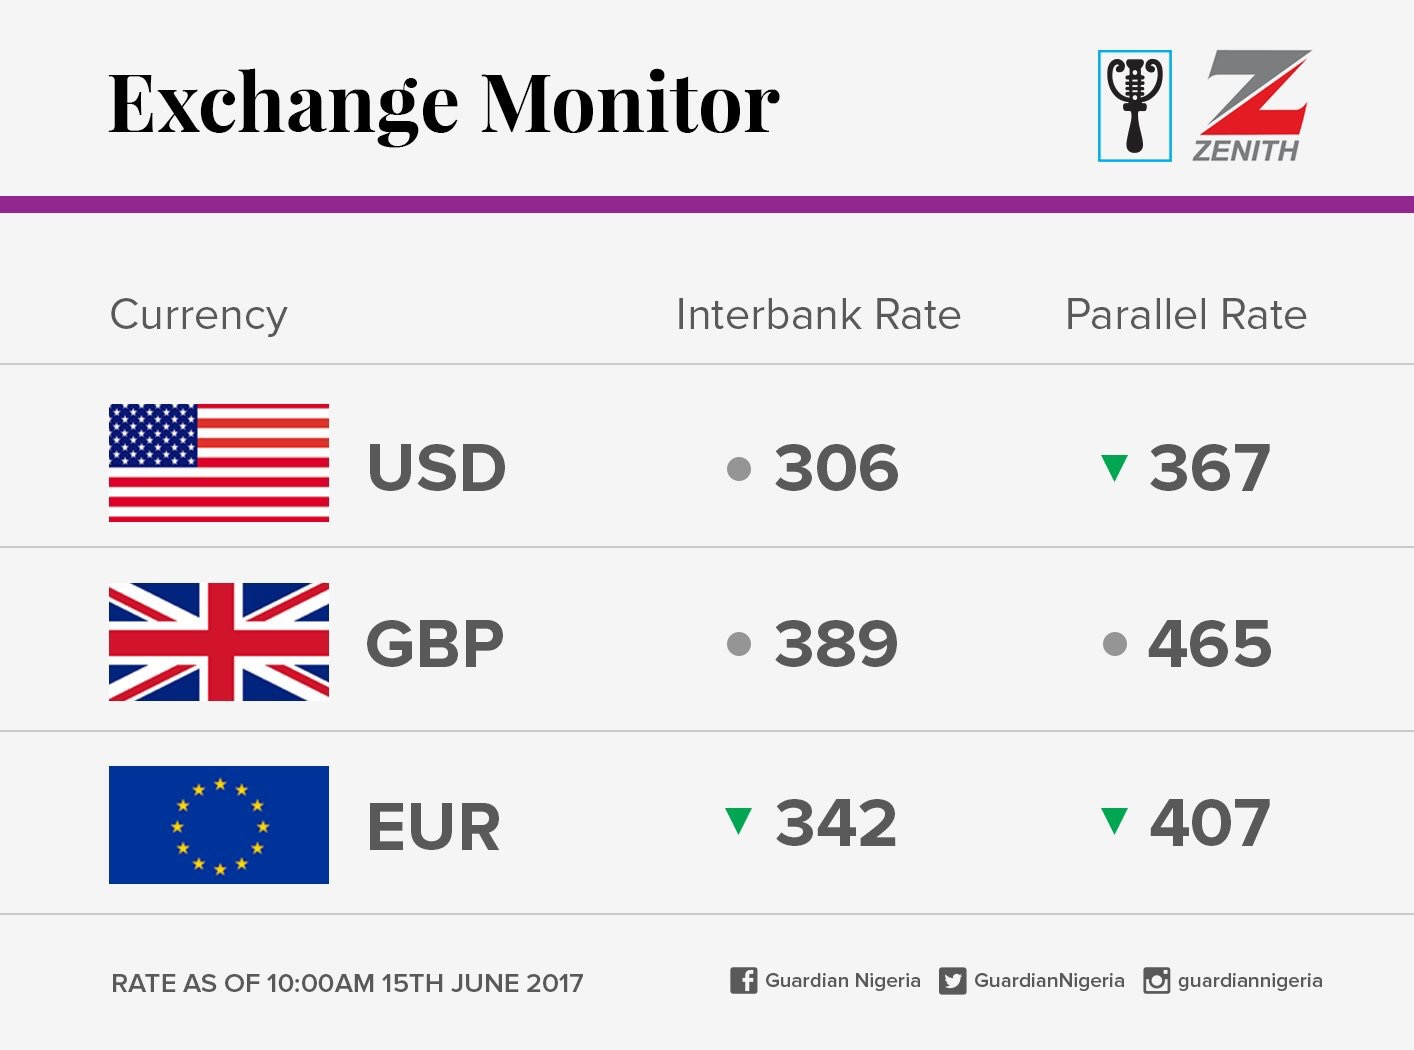 Exchange Rate For 15th June 2017